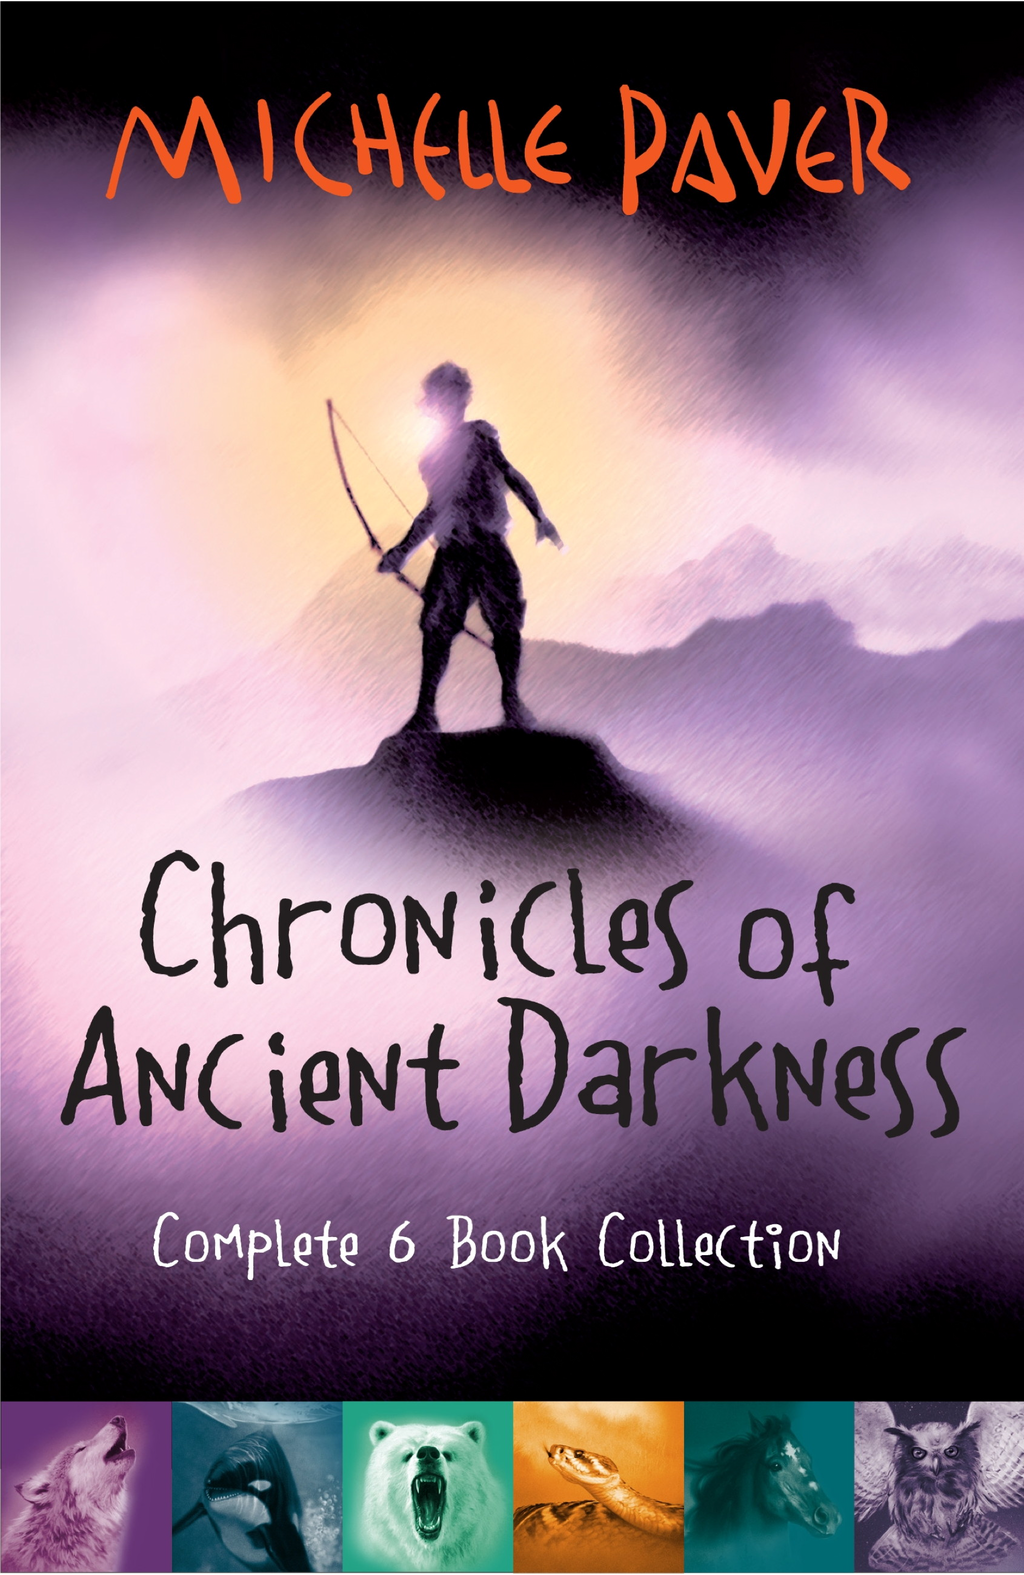 Chronicles of Ancient Darkness Complete eBook Collection